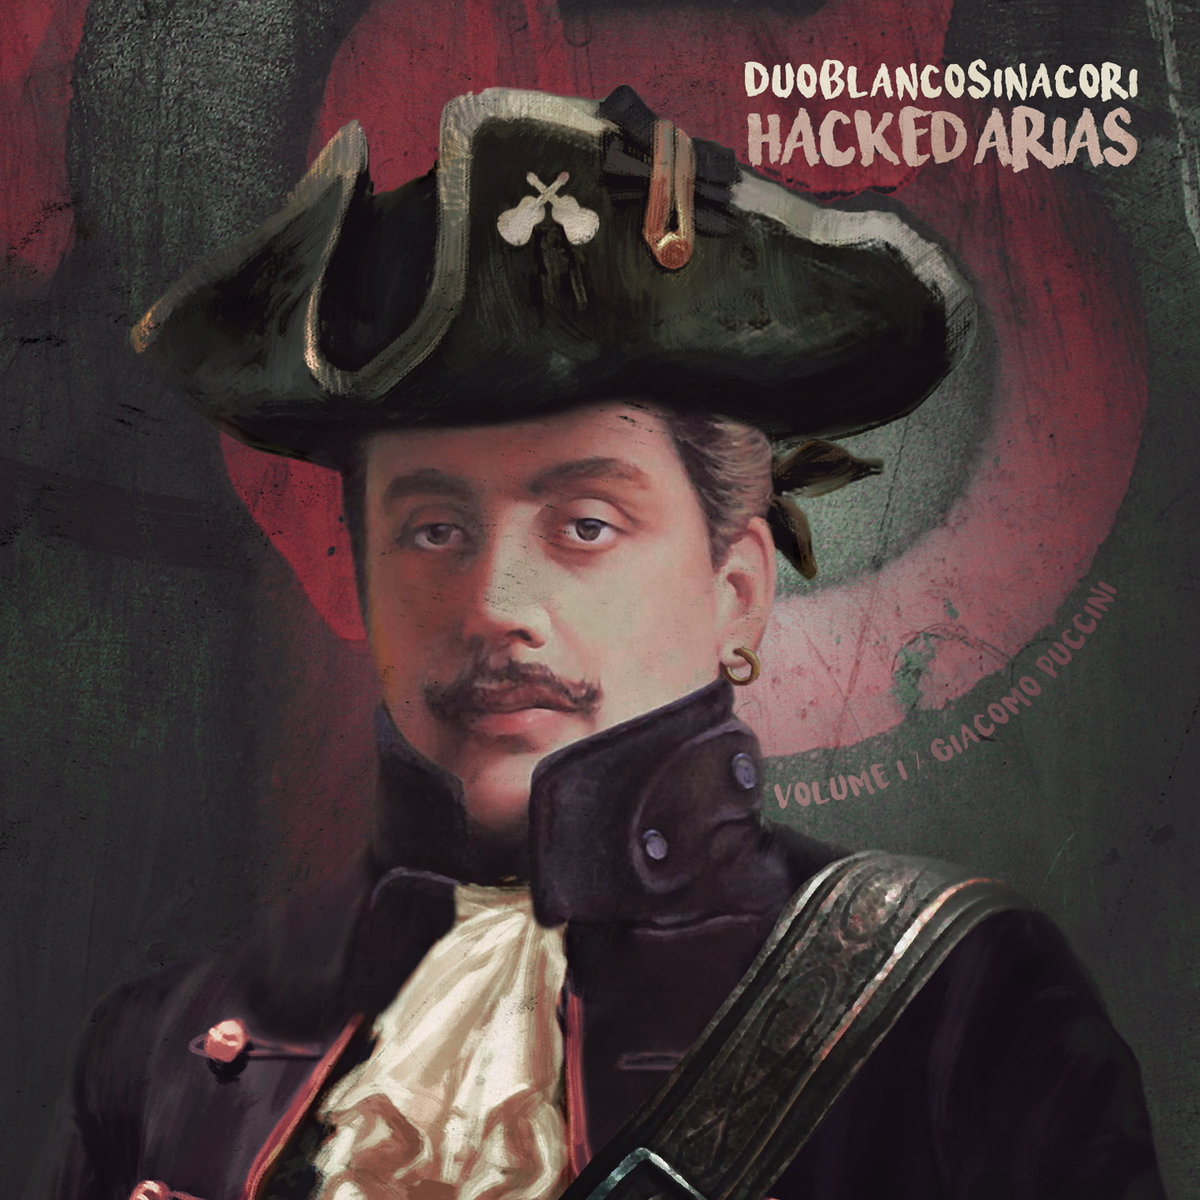 Duo Blanco Sinacori - Hacked Arias (Vol. 1: Giacomo Puccini) - album cover